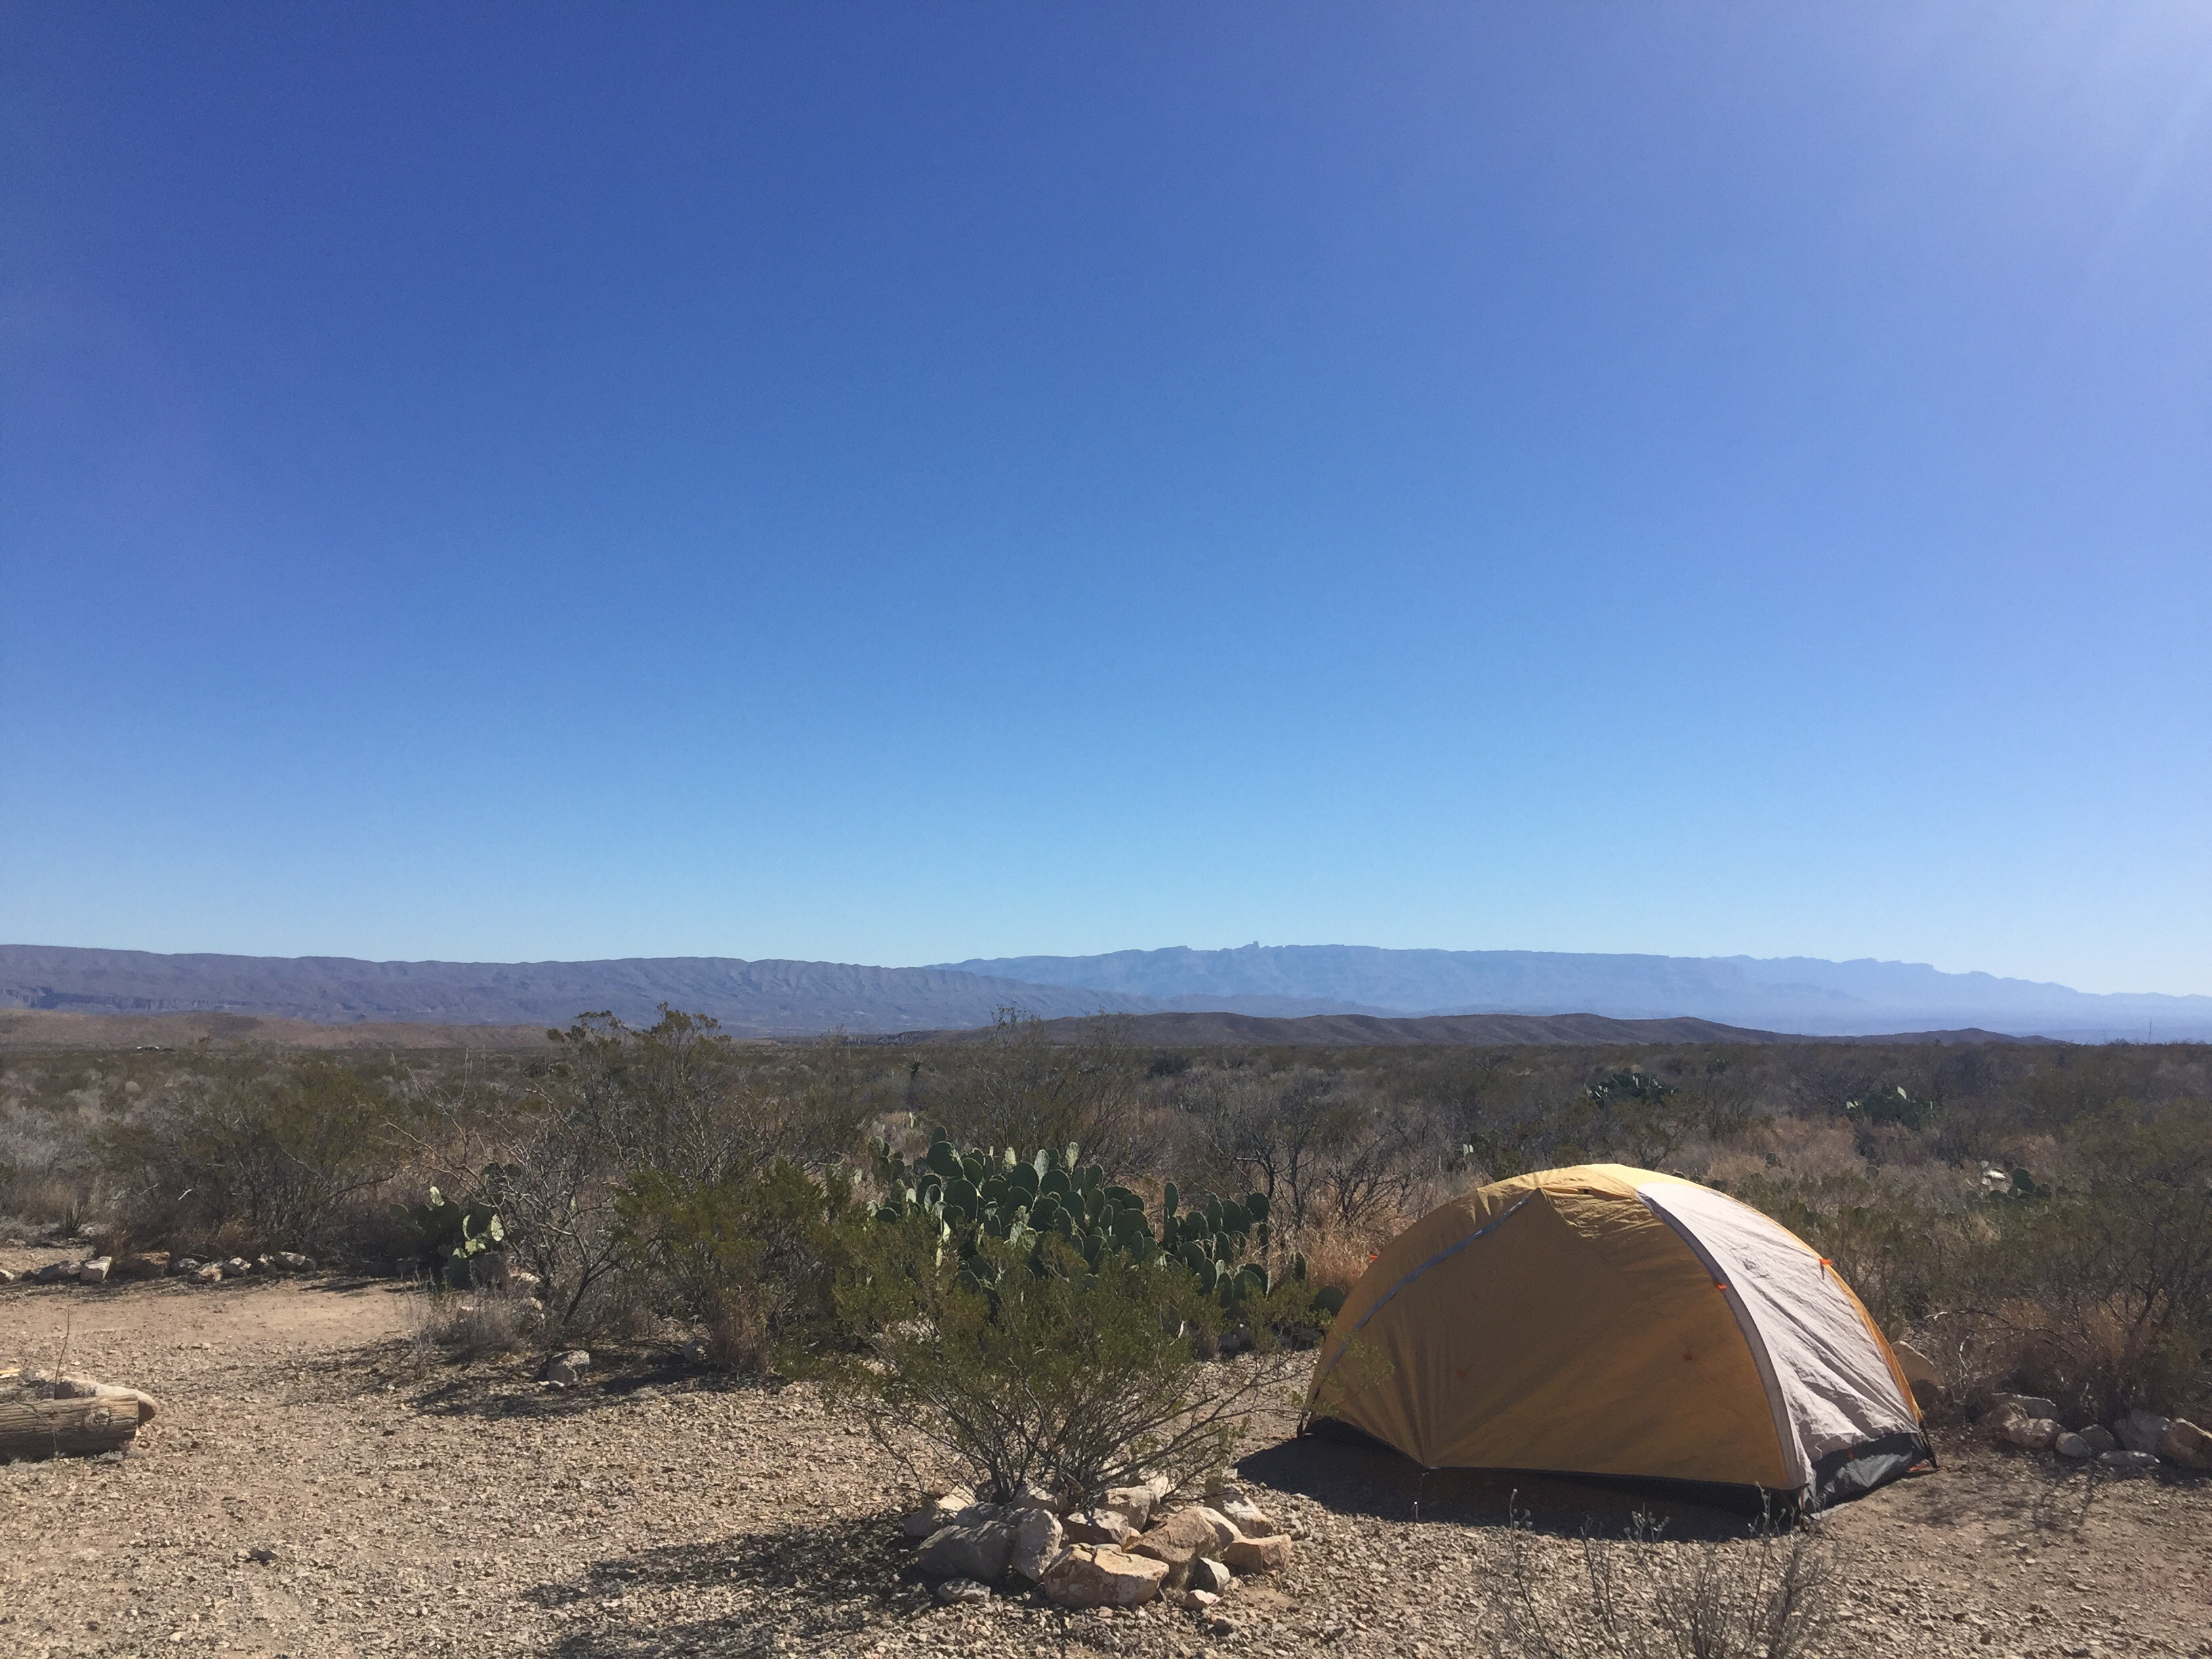 NATIONAL PARKS CAMPING 101 (Guadalupe Mountains & Beyond)